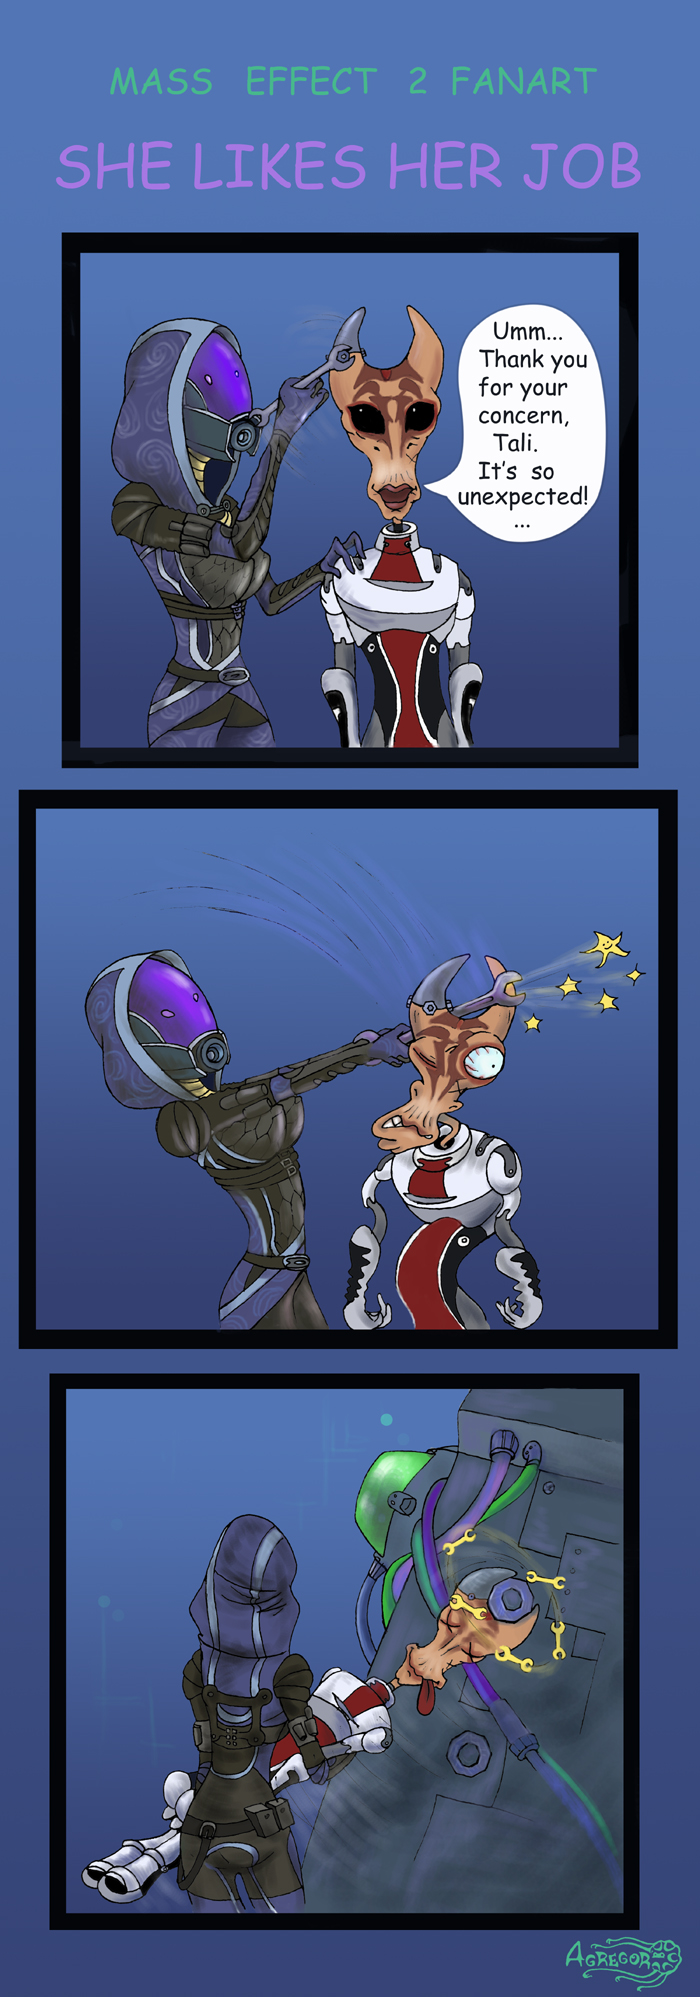 Mass Effect, She likes her job by Agregor